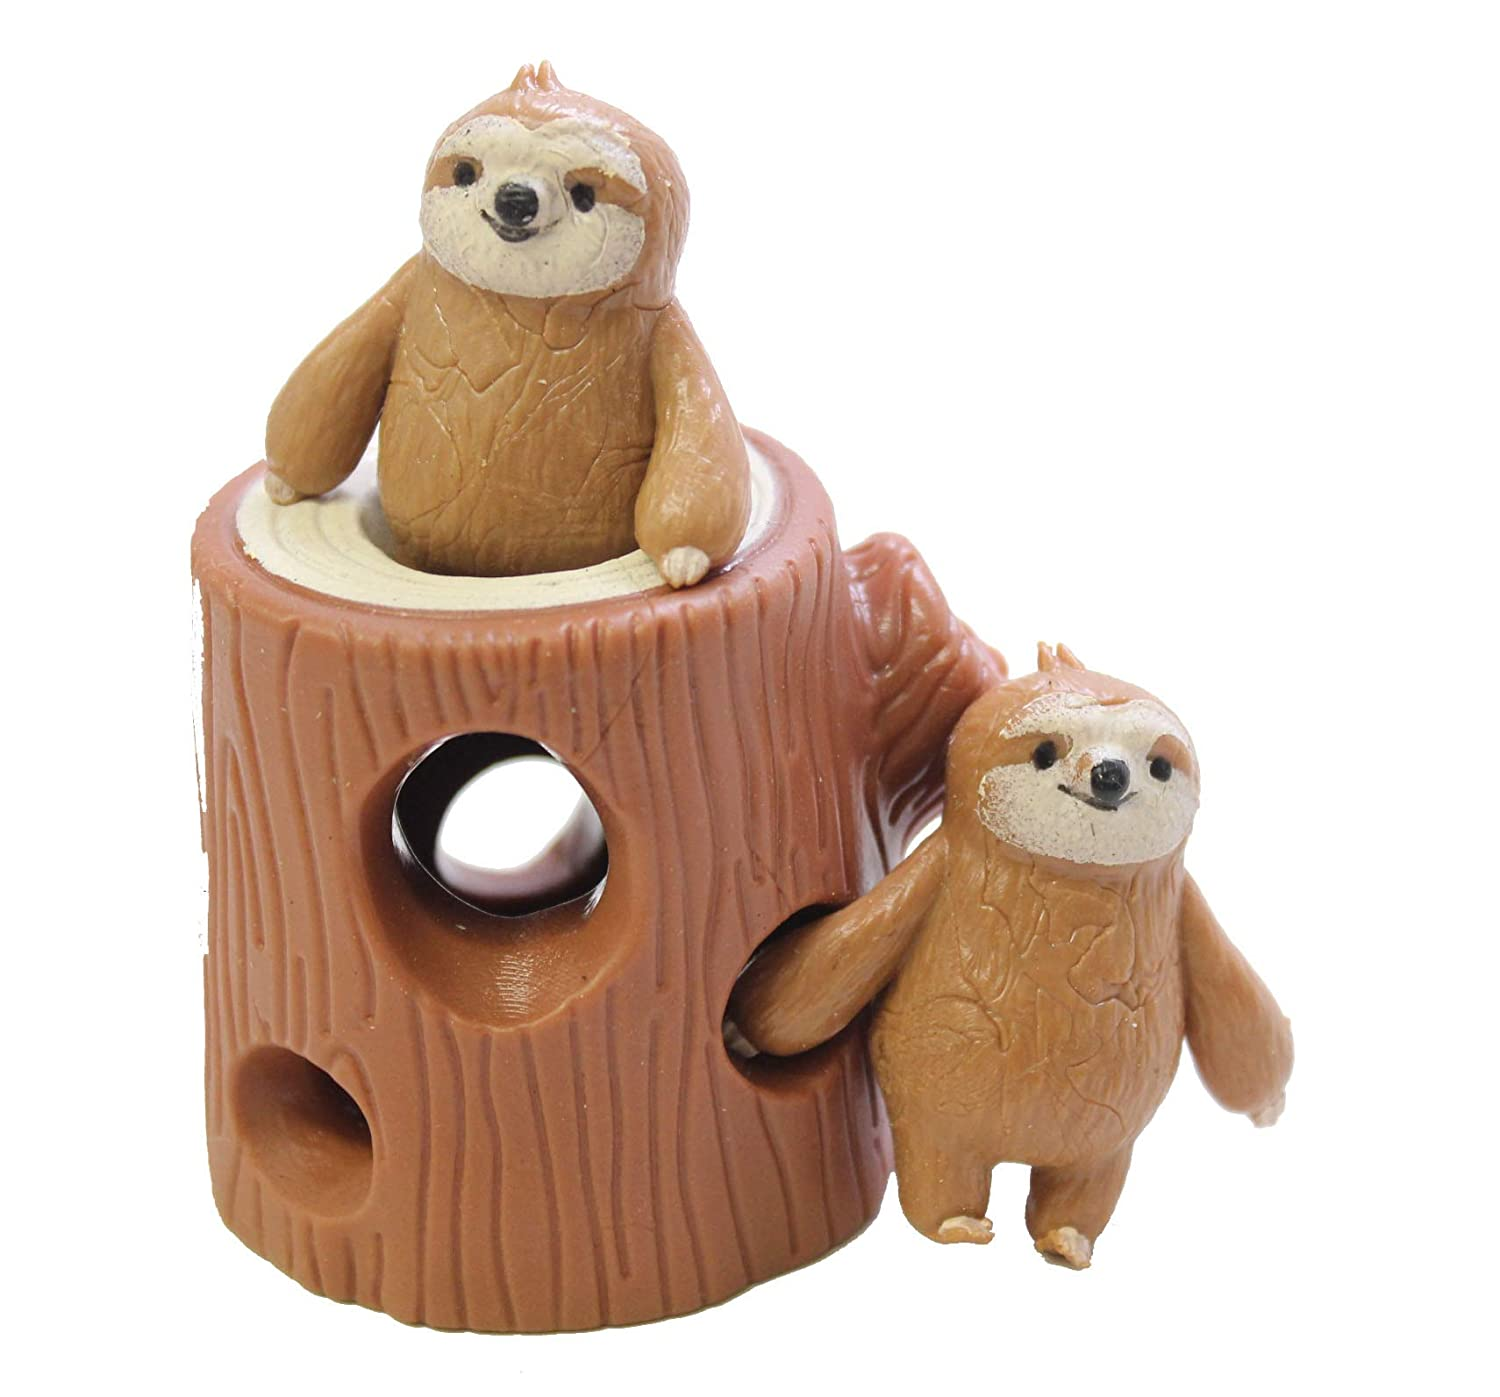 Curious Minds Busy Bags Sloths in Tree Stump Peek a Boo Stretchy Fidget Toy Soothing Calm Anxiety Focus ADD ADHD